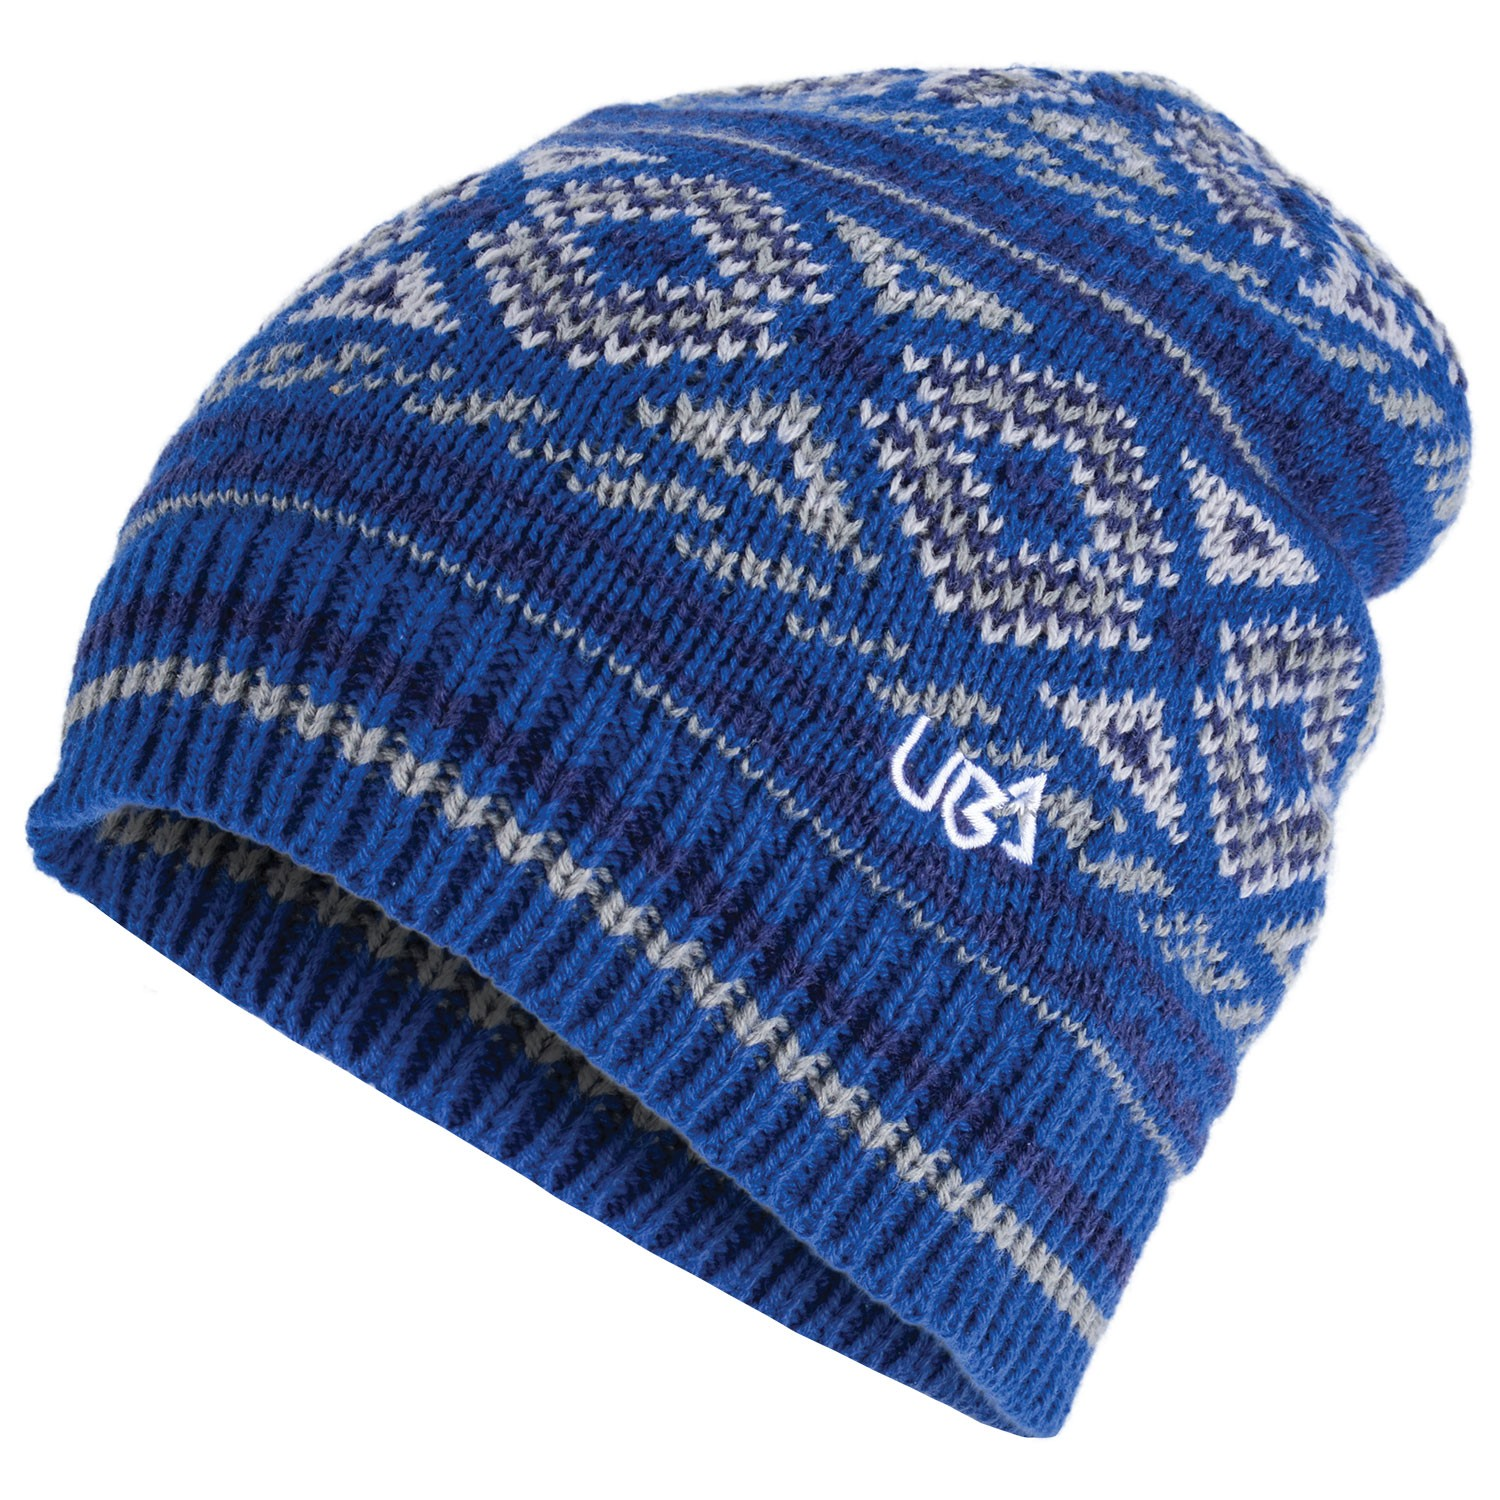 Blue Patterned Nordic Beanie Hat Nomad- Free Delivery Over £20 - Urban Beach 141b839a5e0